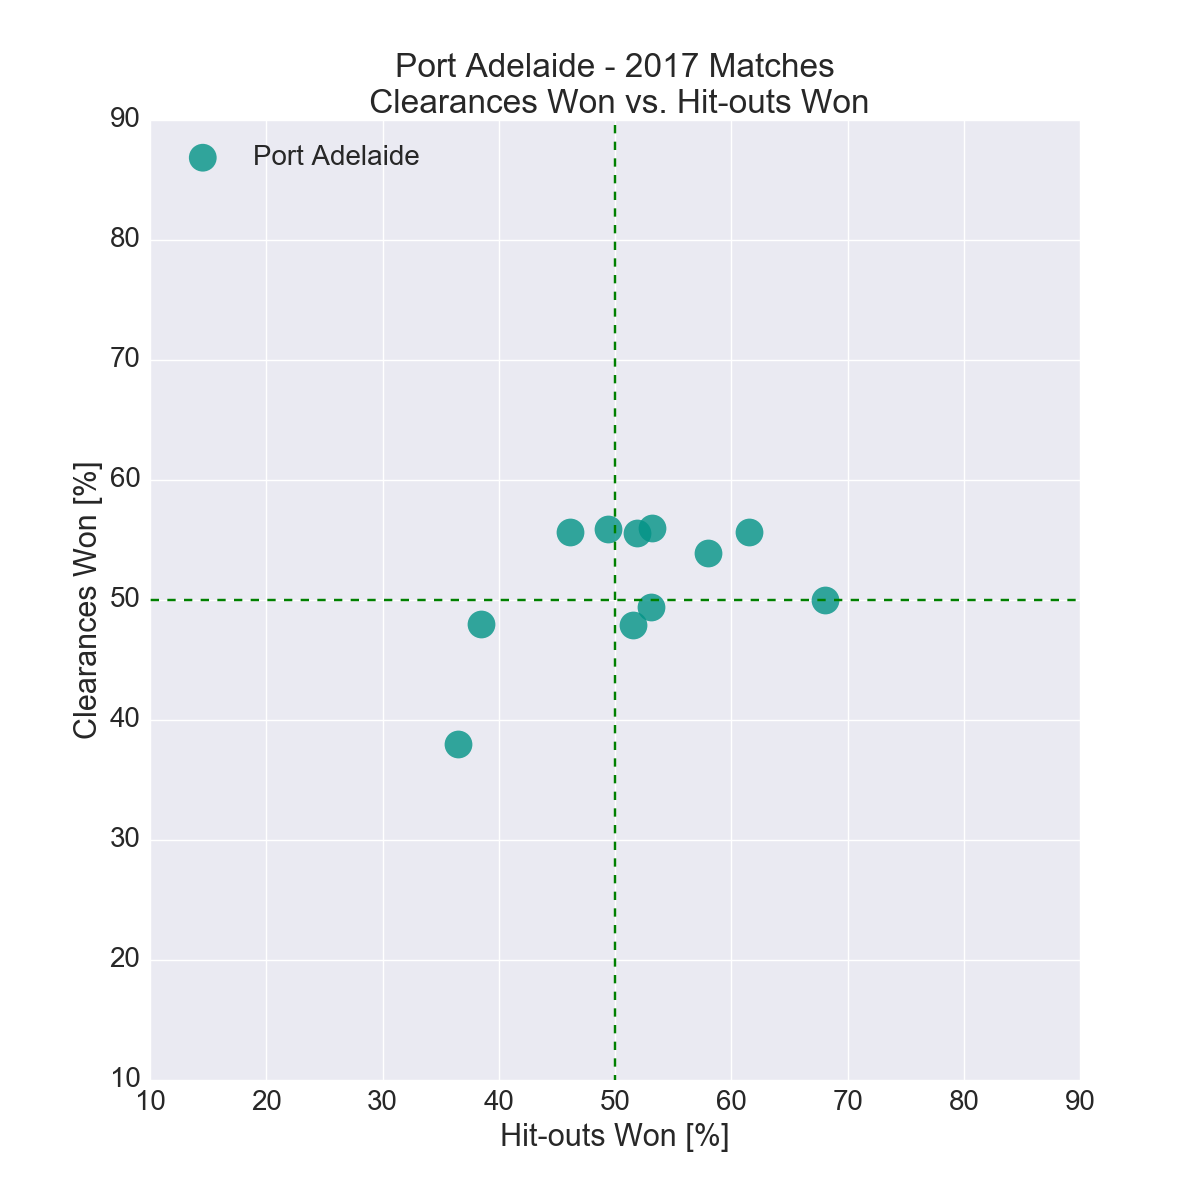 Figure-16: Port Adelaide in 2017 – Clearances Won vs. Hit-outs Won